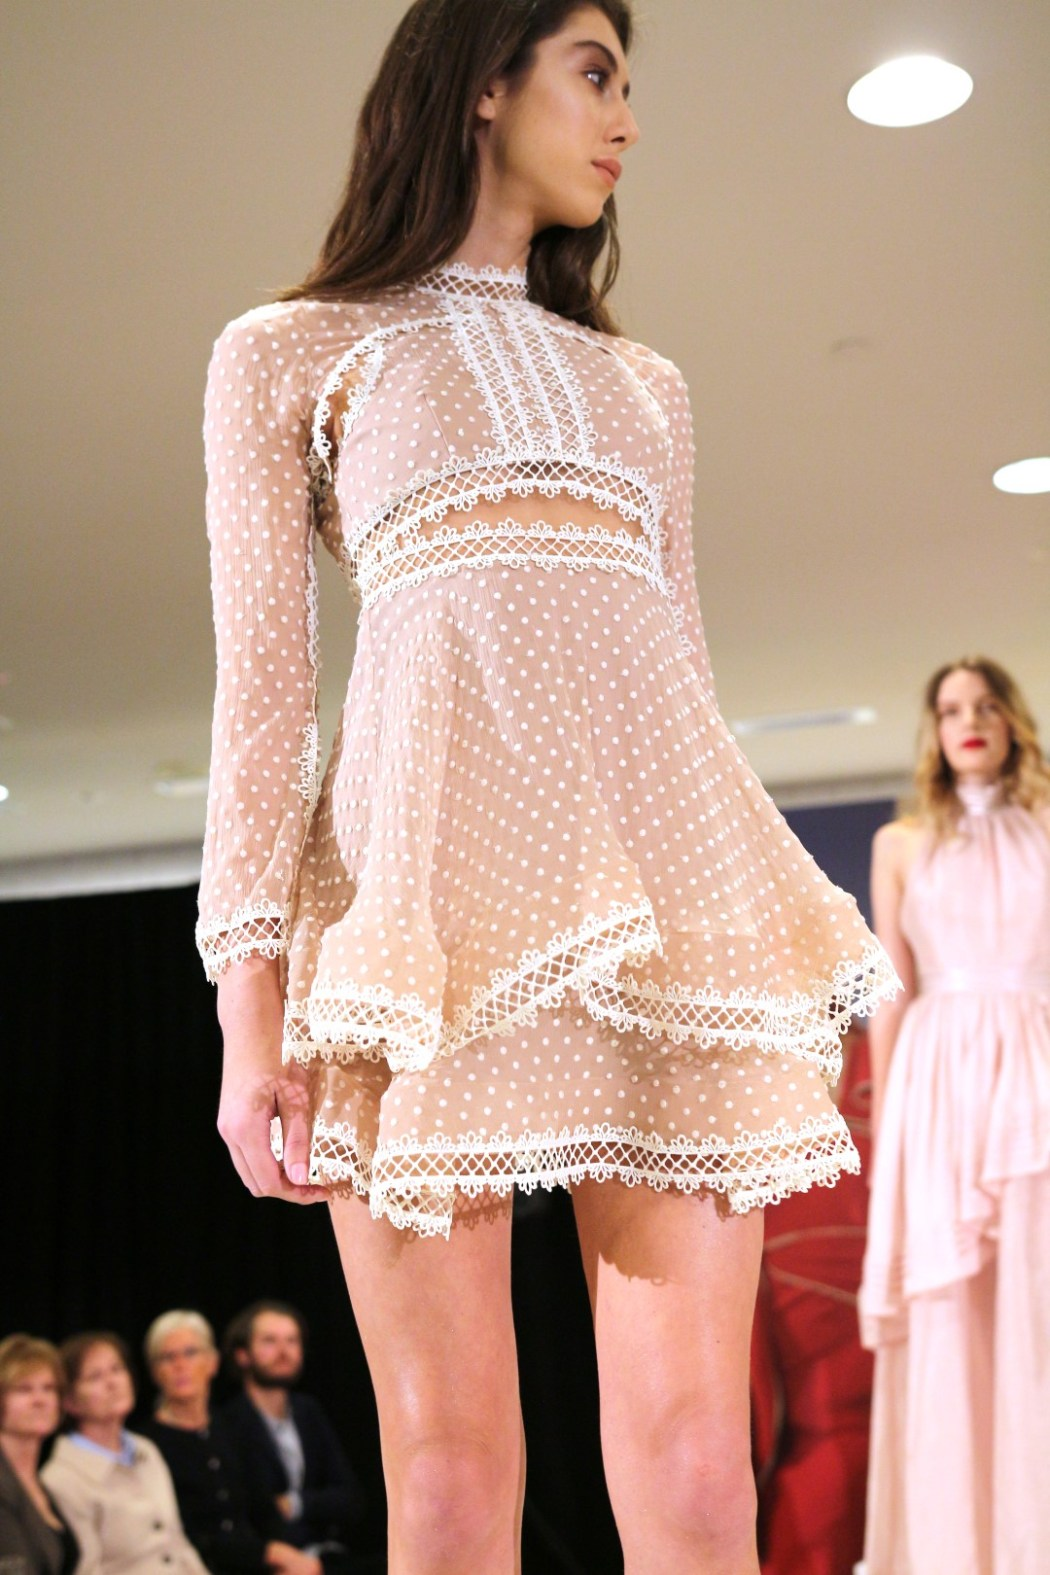 'The Tea Party Mini Dress' by Thurley